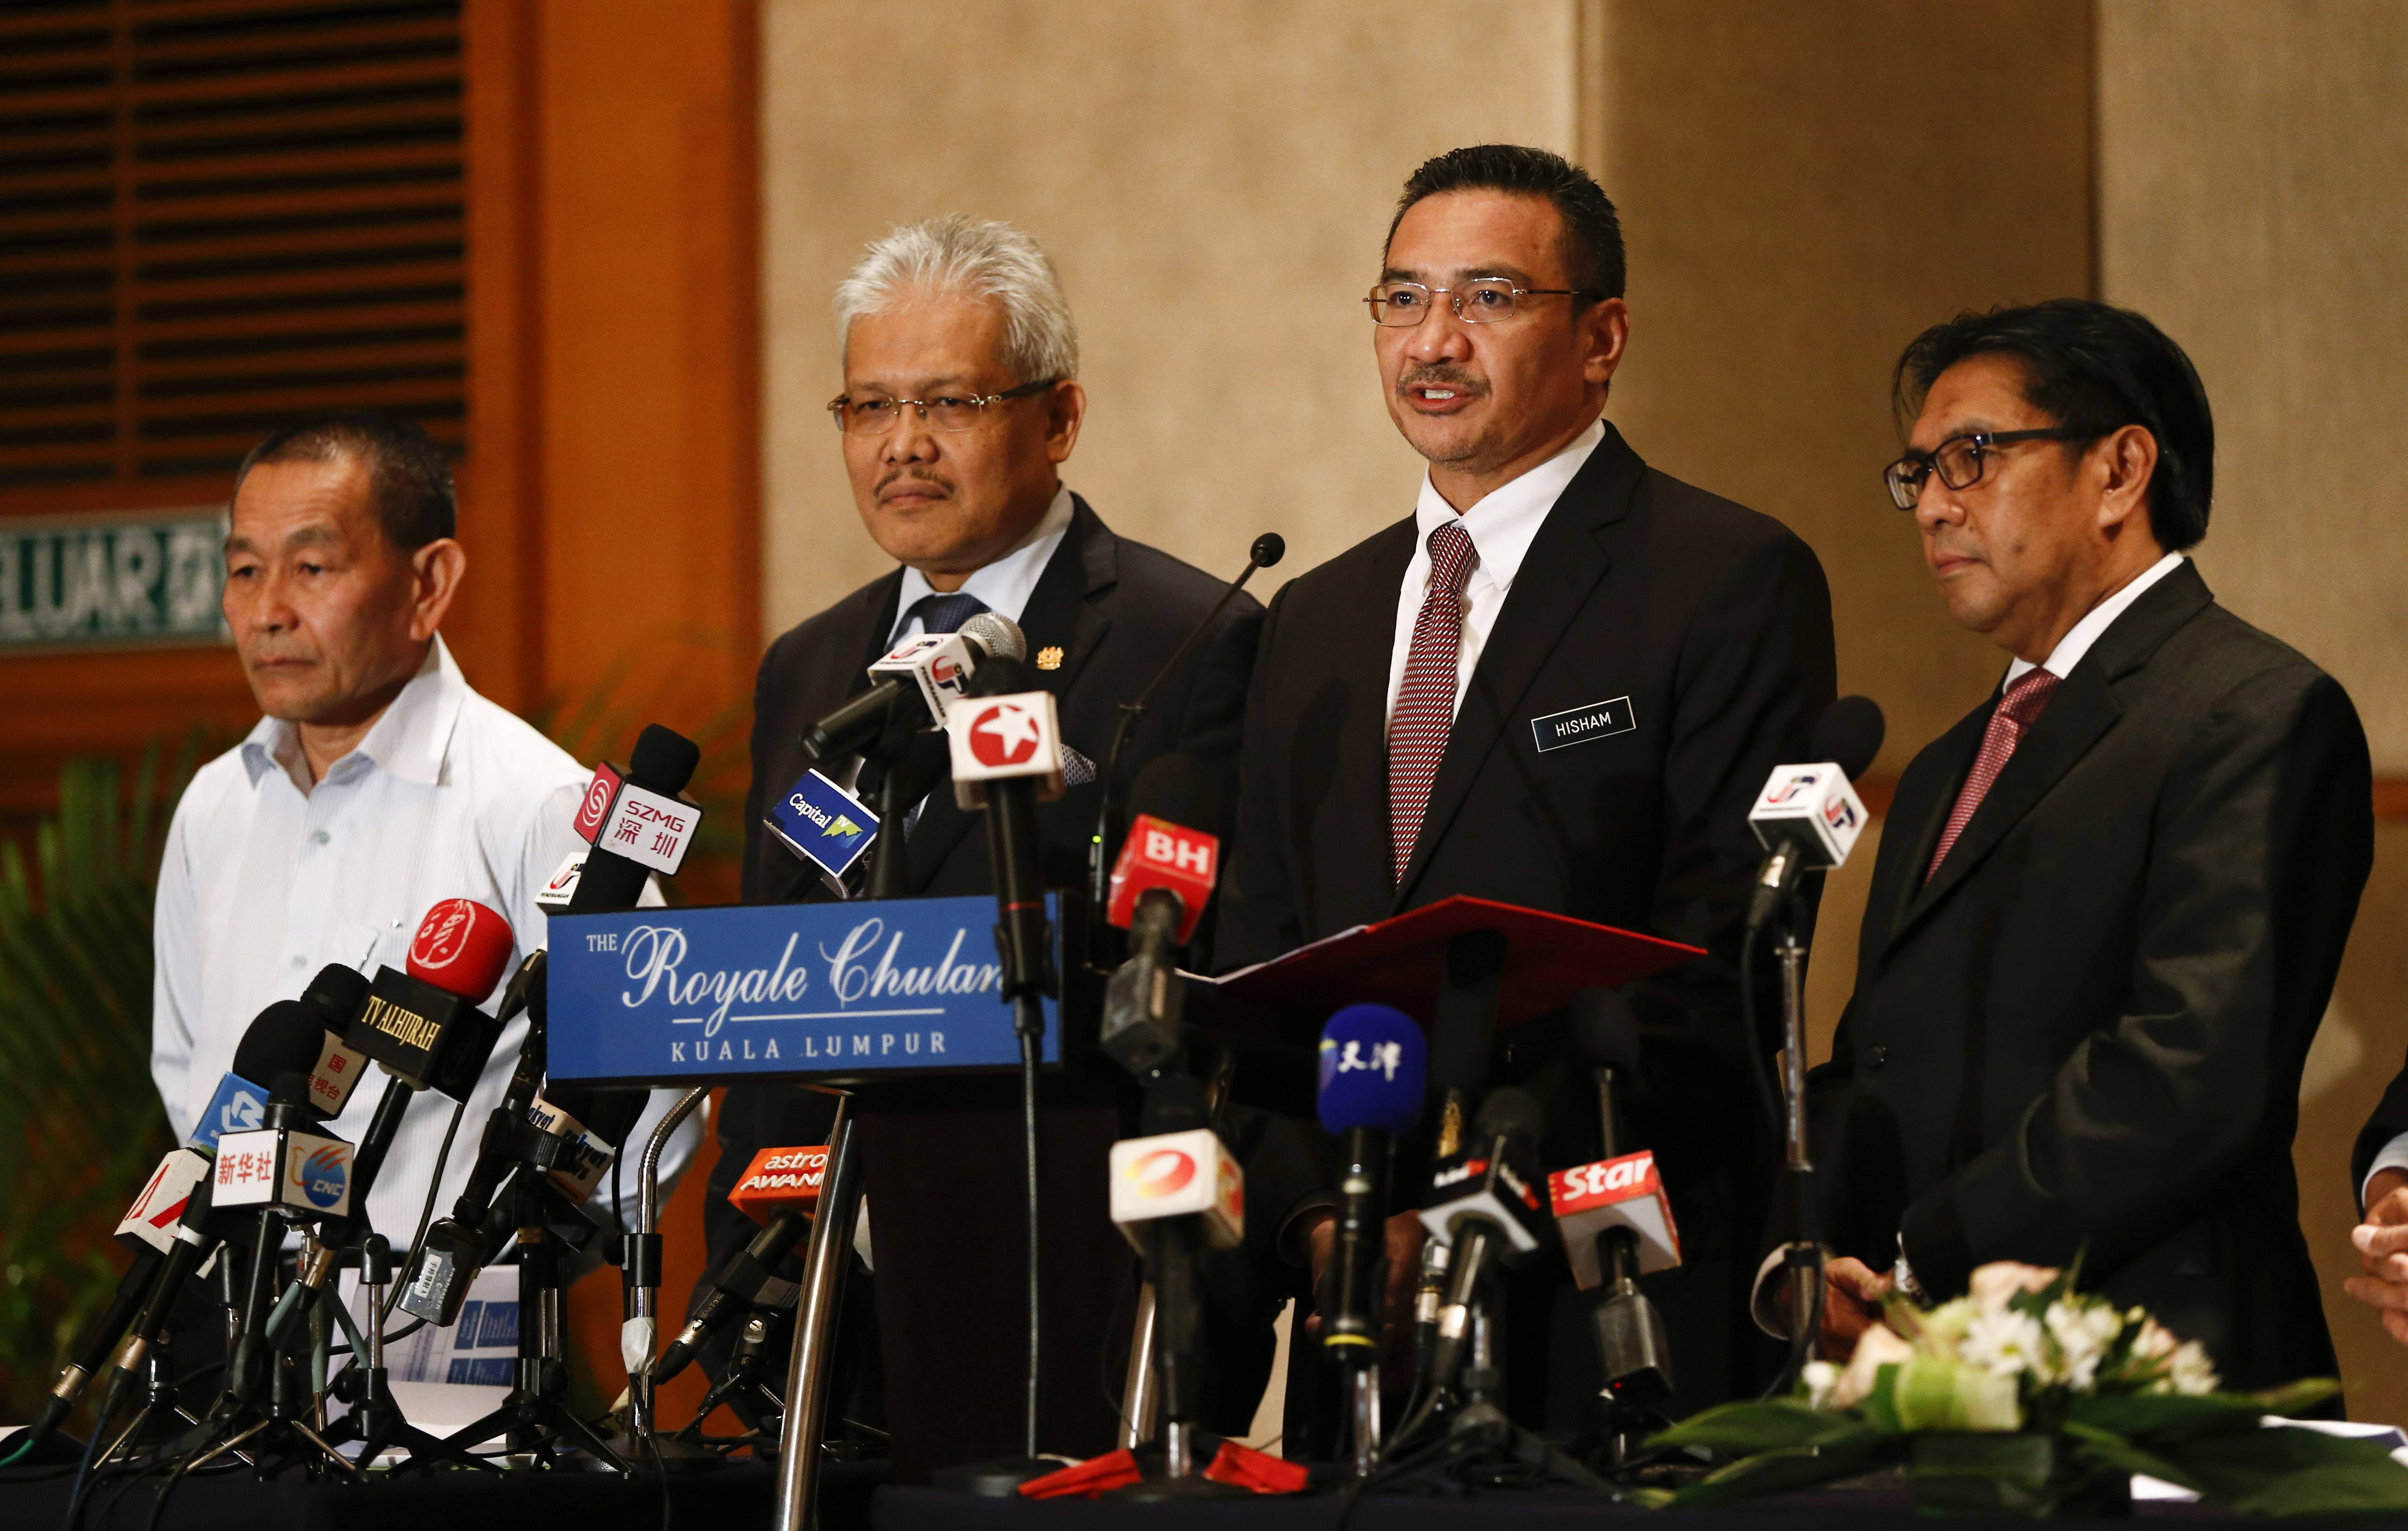 Malaysia's Defense Minister and acting Transport Minister Hishammuddin Hussein, second right, speaks druing a press conference on the missing Malaysia Airlines MH370 at a hotel in Kuala Lumpur, Malaysia, Monday. From left, Malaysia Airlines Group CEO Ahmad Jauhari Yahya, Deputy Minister of Foreign Affairs Hamzah Zainudin, Hishammuddin and Director general of the Malaysian Department of Civil Aviation Azharuddin Abdul Rahman.